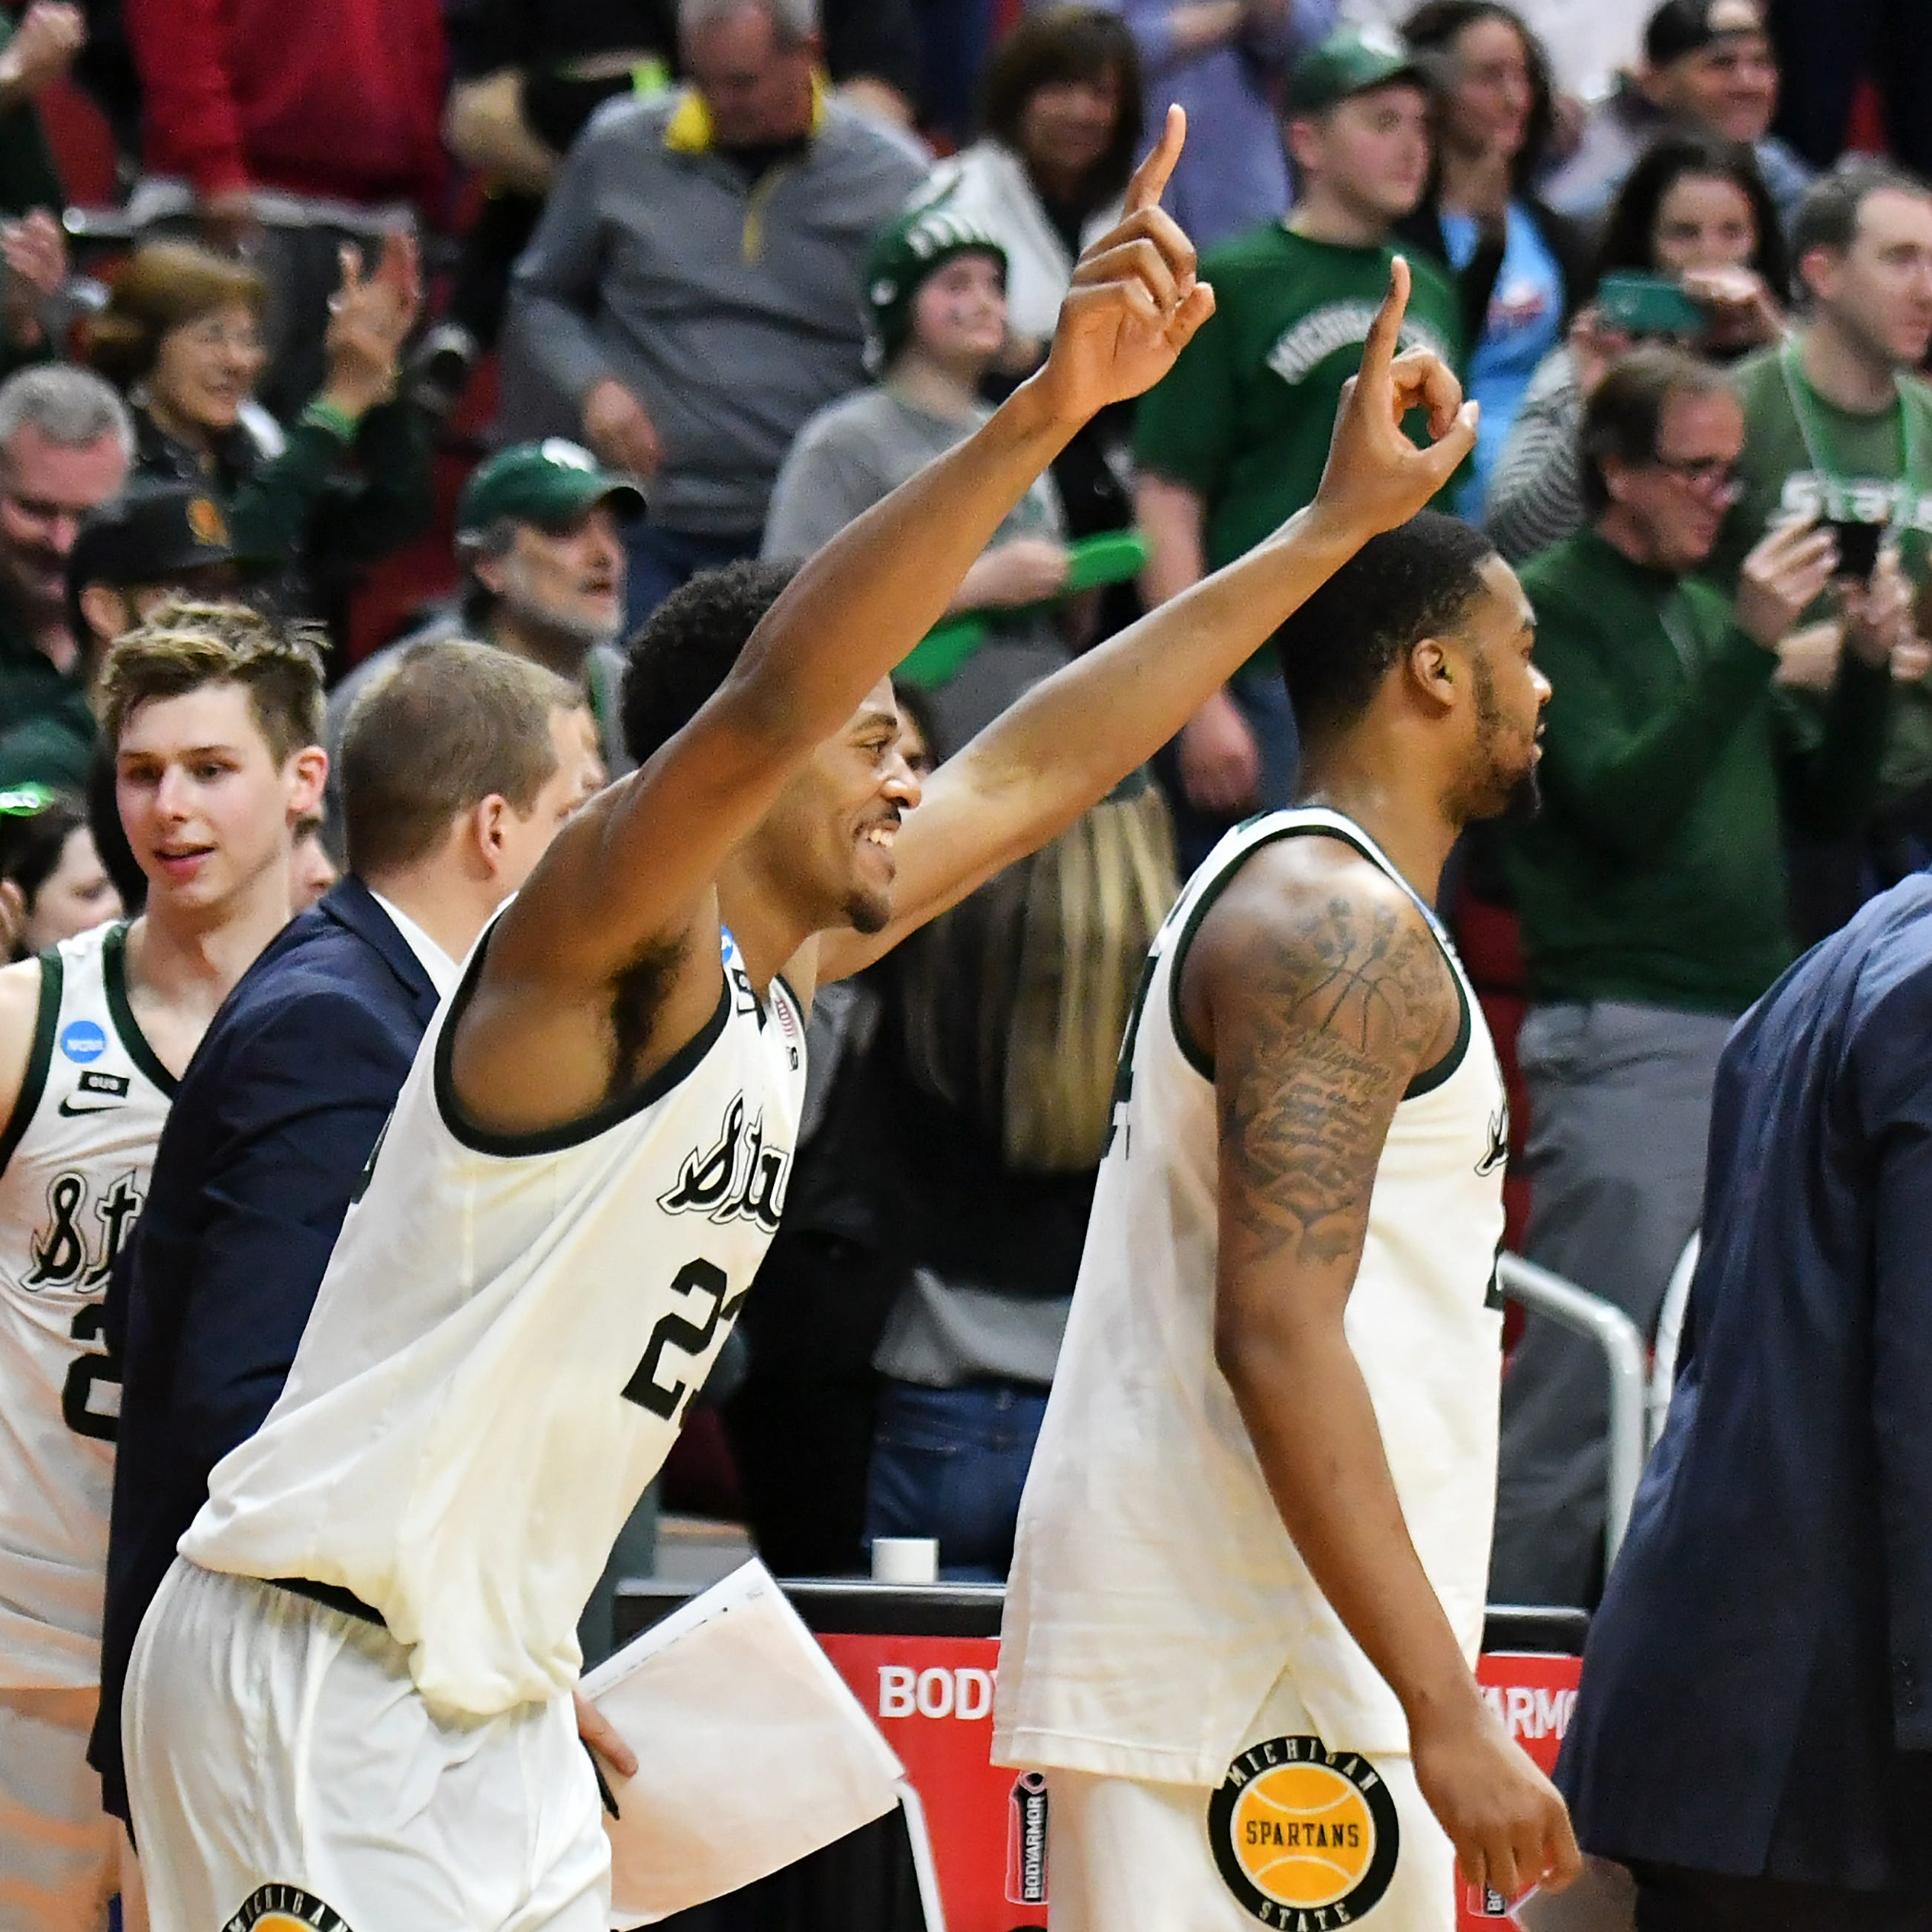 'This one feels better': Michigan State squashes Minnesota en route to first Sweet 16 in four years